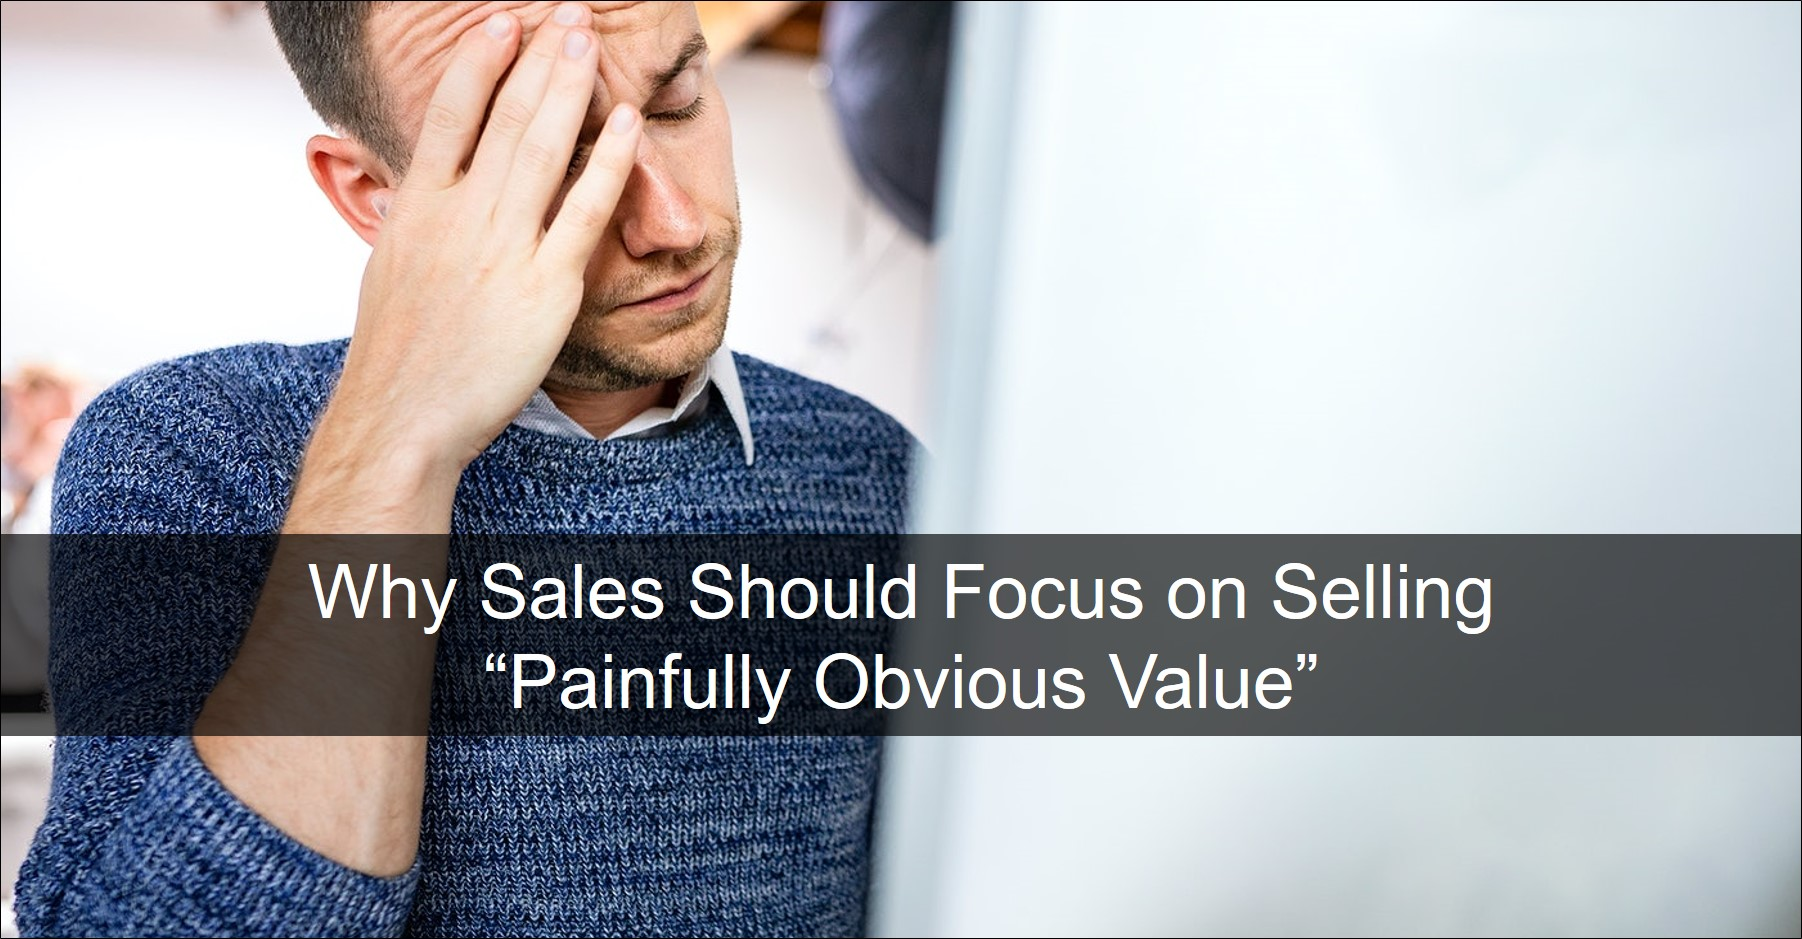 B2B Sales Needs to Focus on Painfully Obvious Value